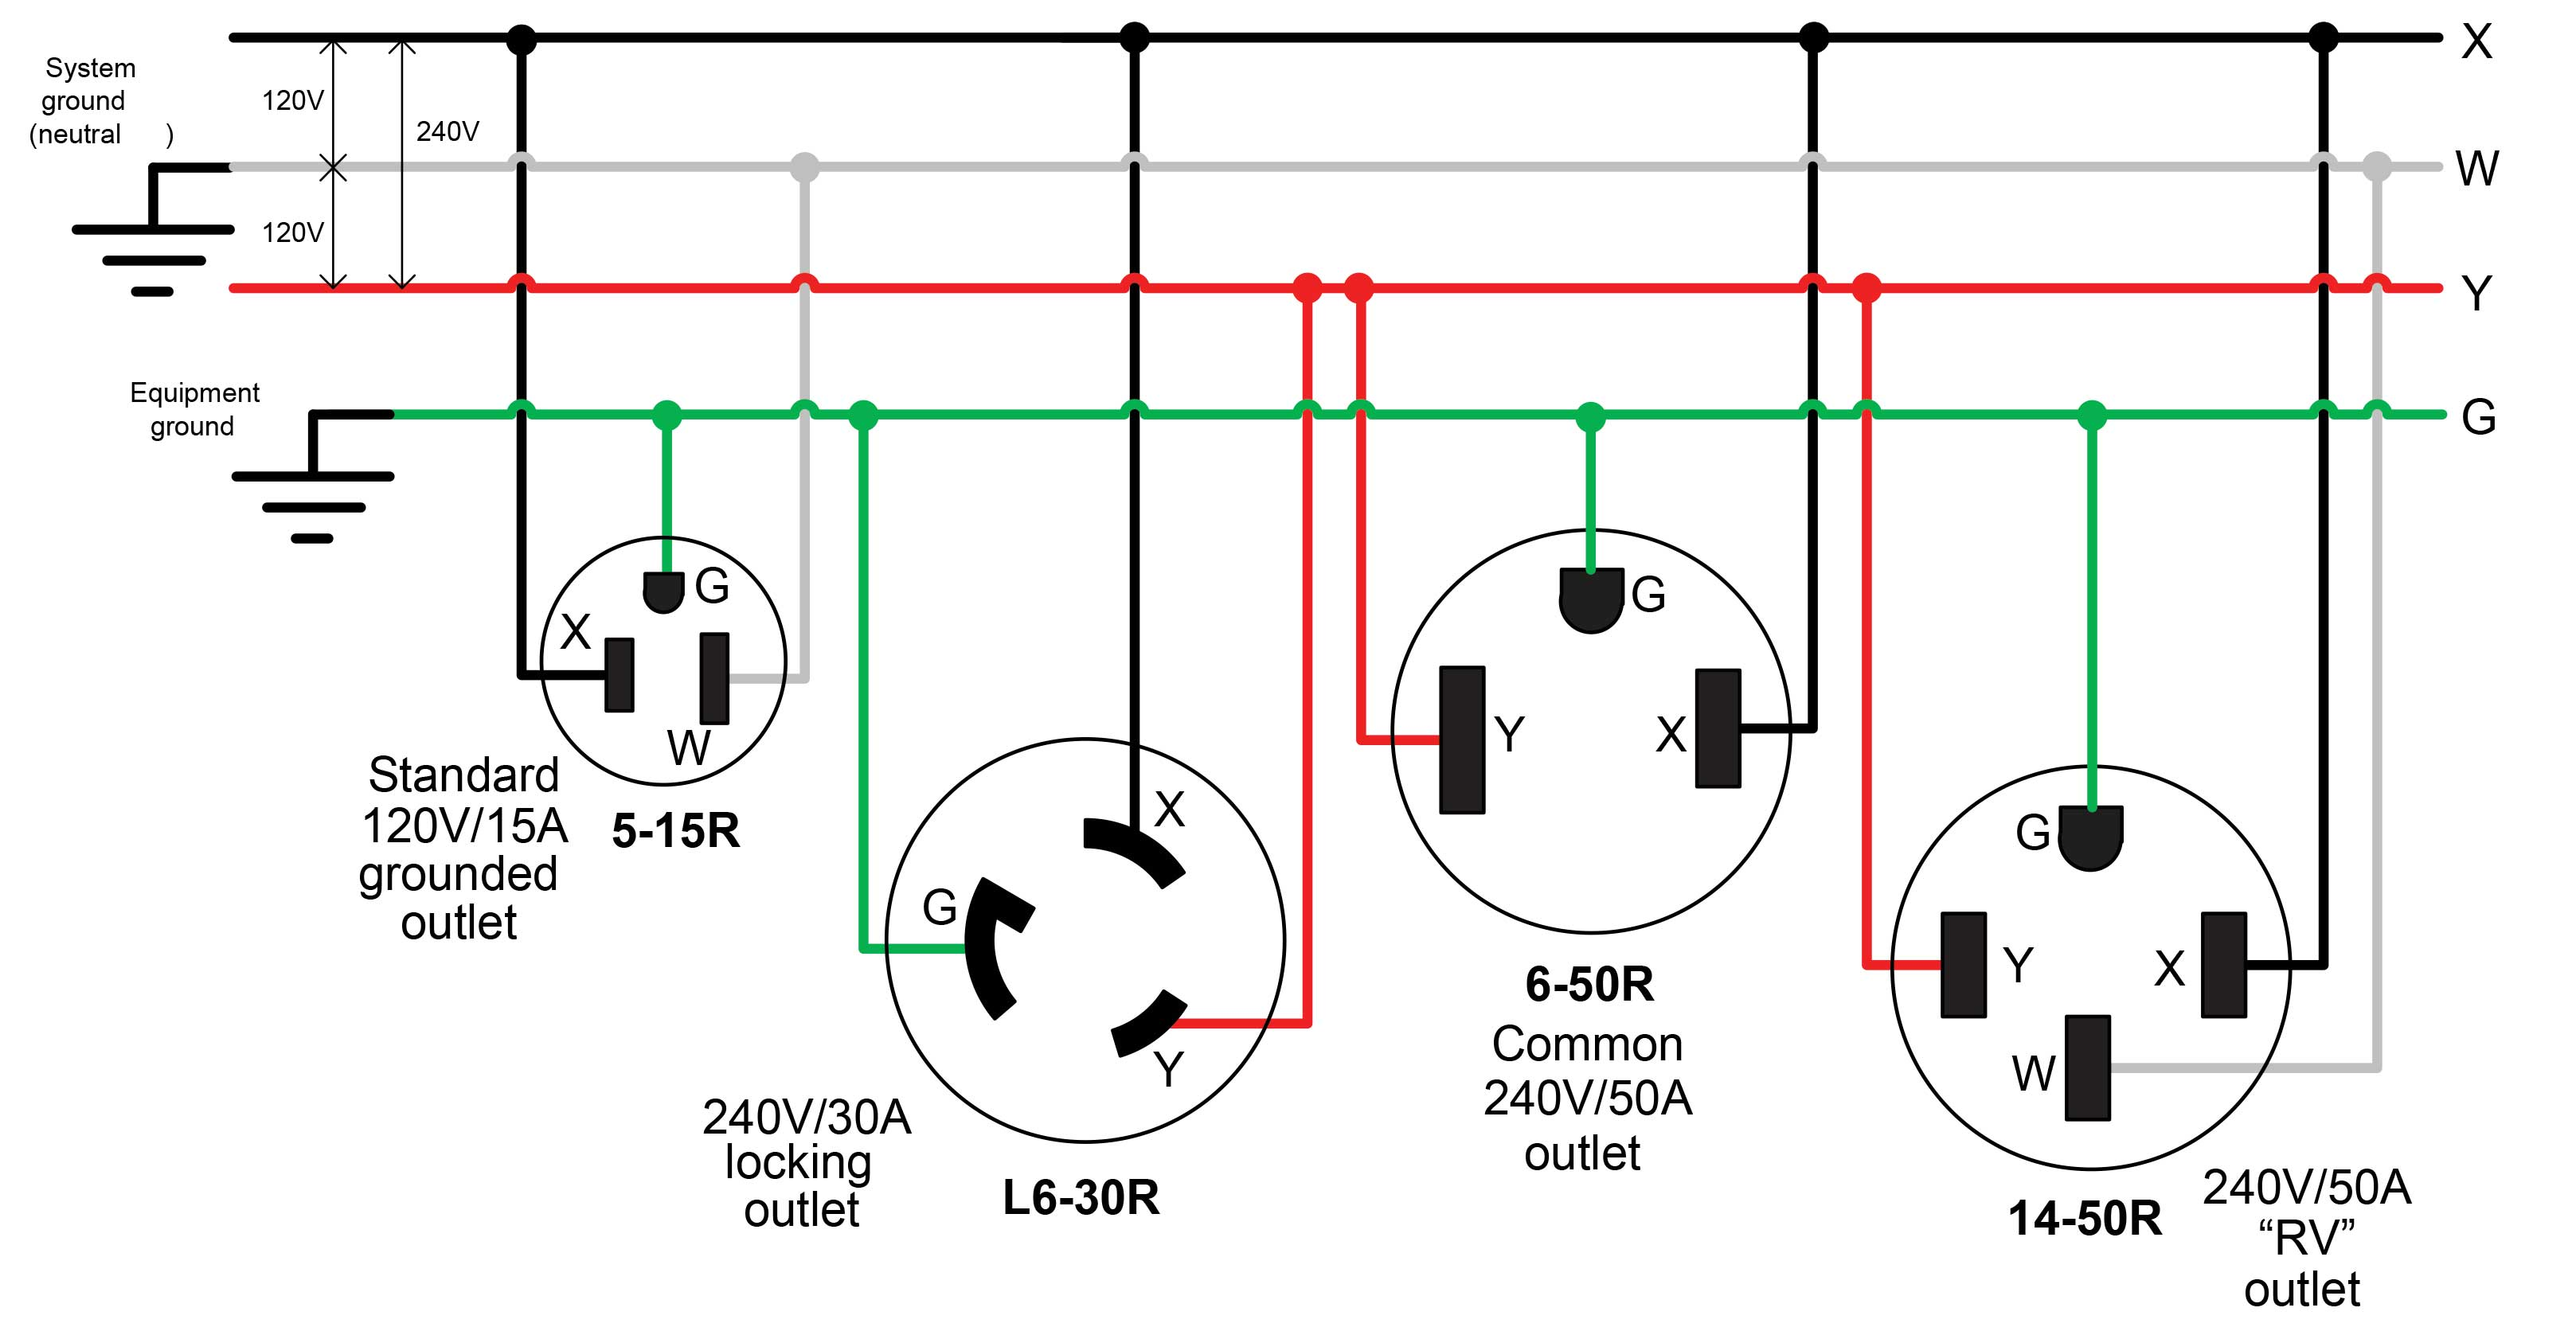 4 prong twist lock plug wiring diagram 4 image 3 prong twist lock plug wiring diagram 3 auto wiring diagram on 4 prong twist lock